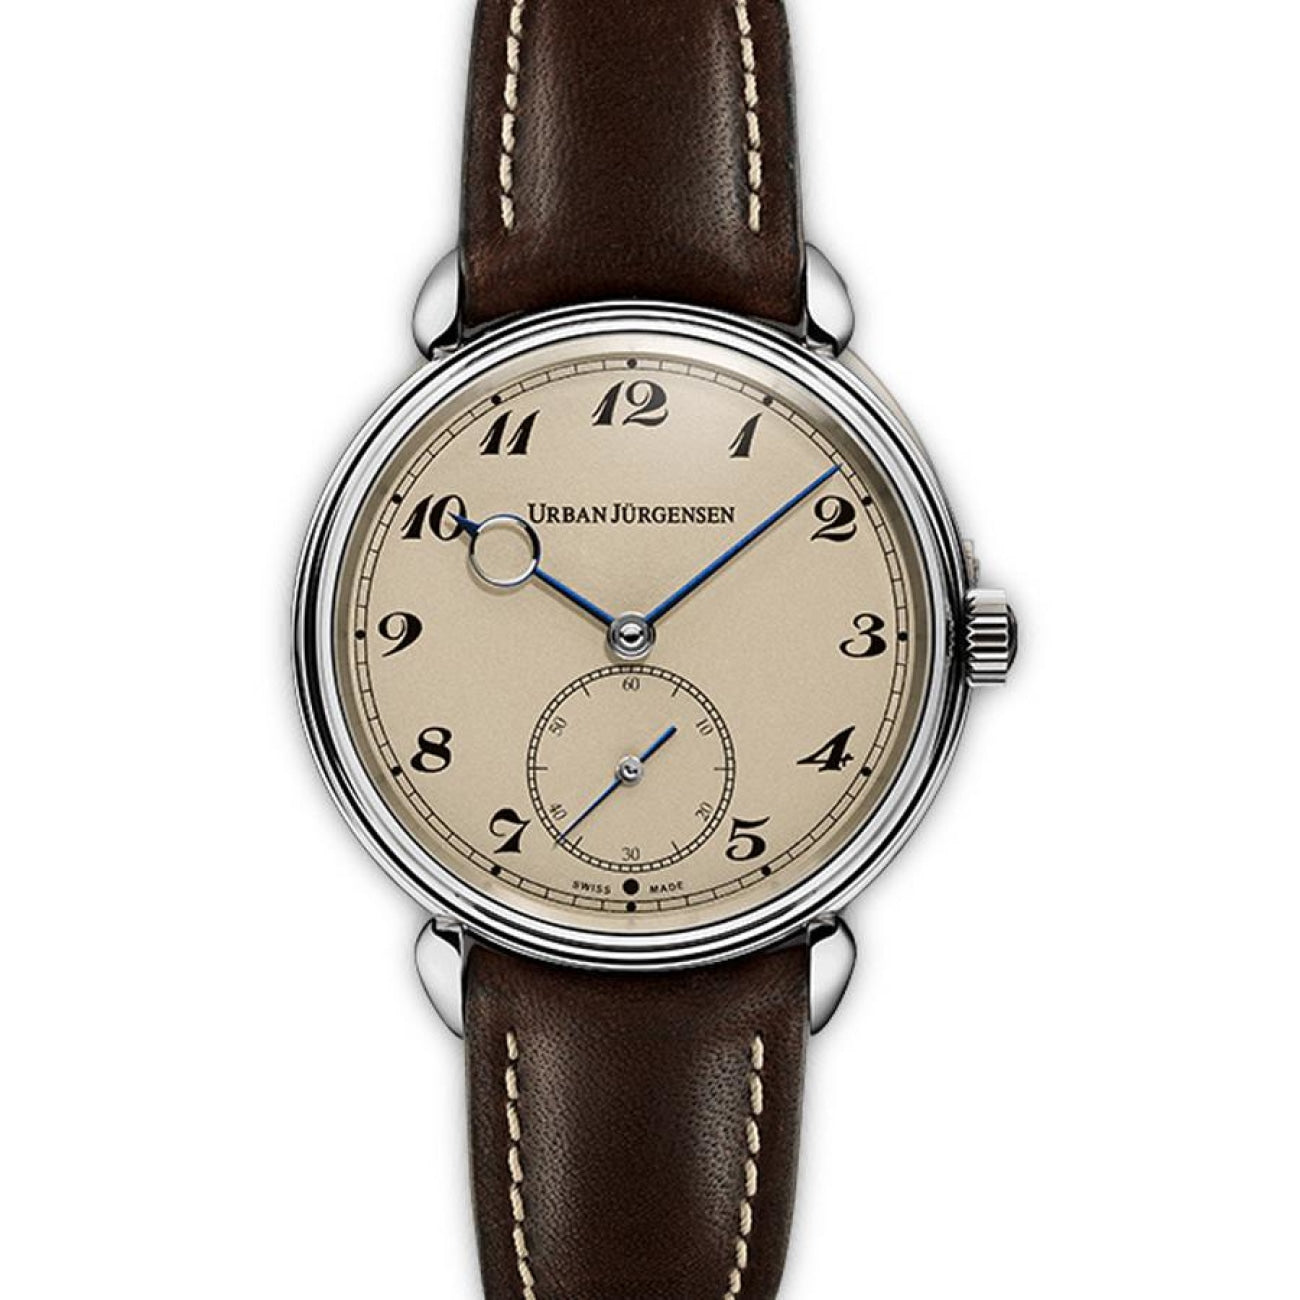 Urban Jurgensen Watches - The Alfred | Manfredi Jewels